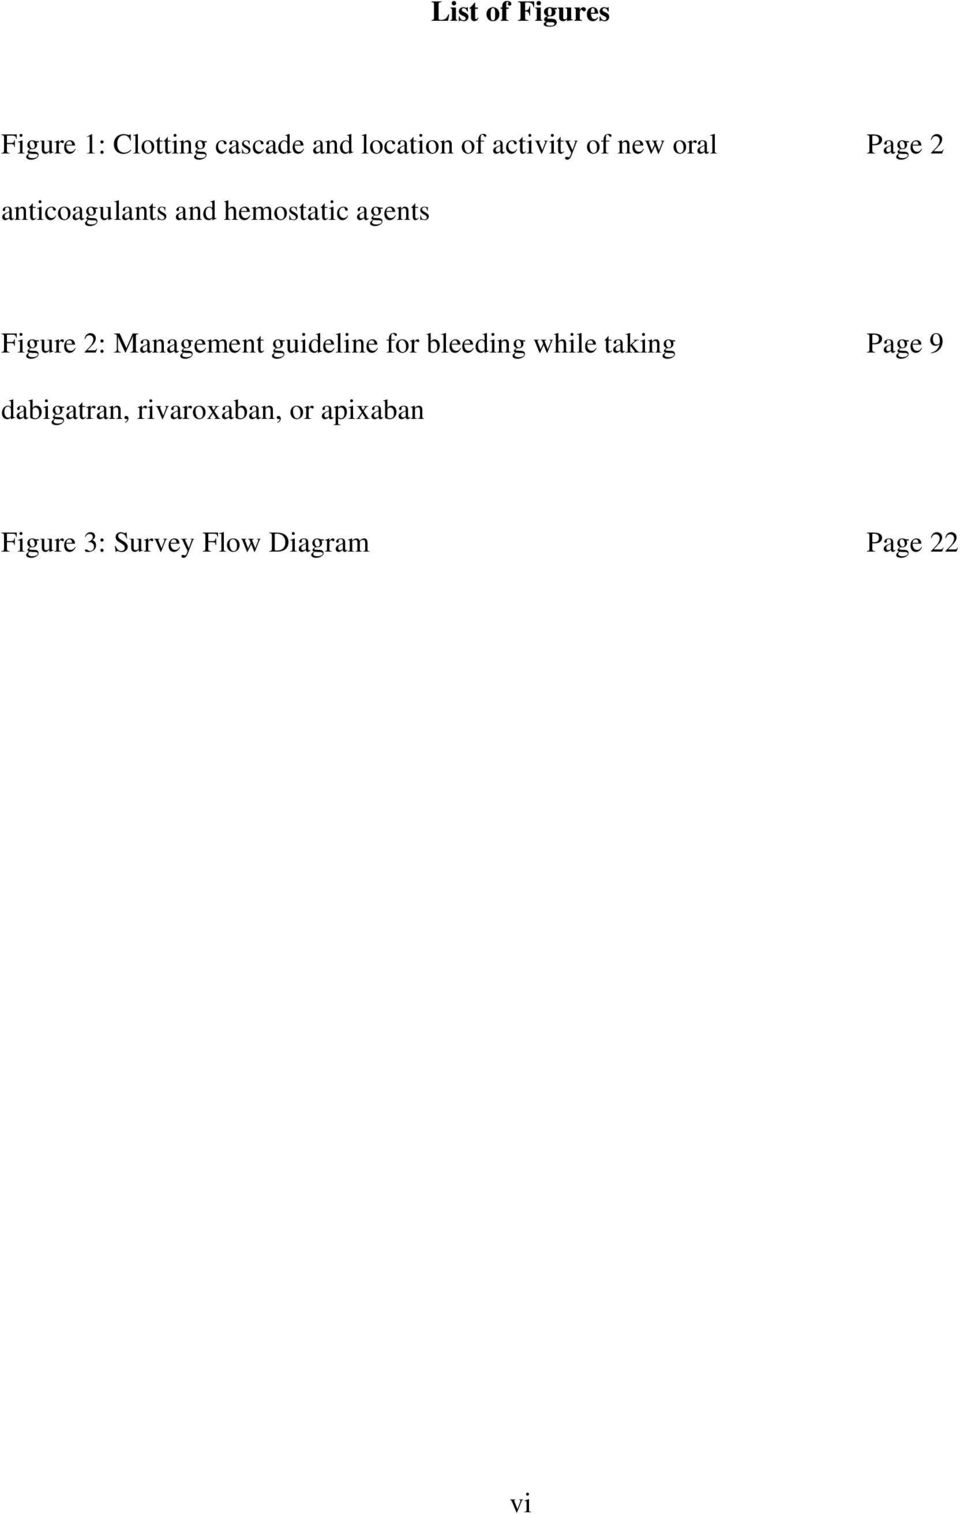 Figure 2: Management guideline for bleeding while taking Page 9